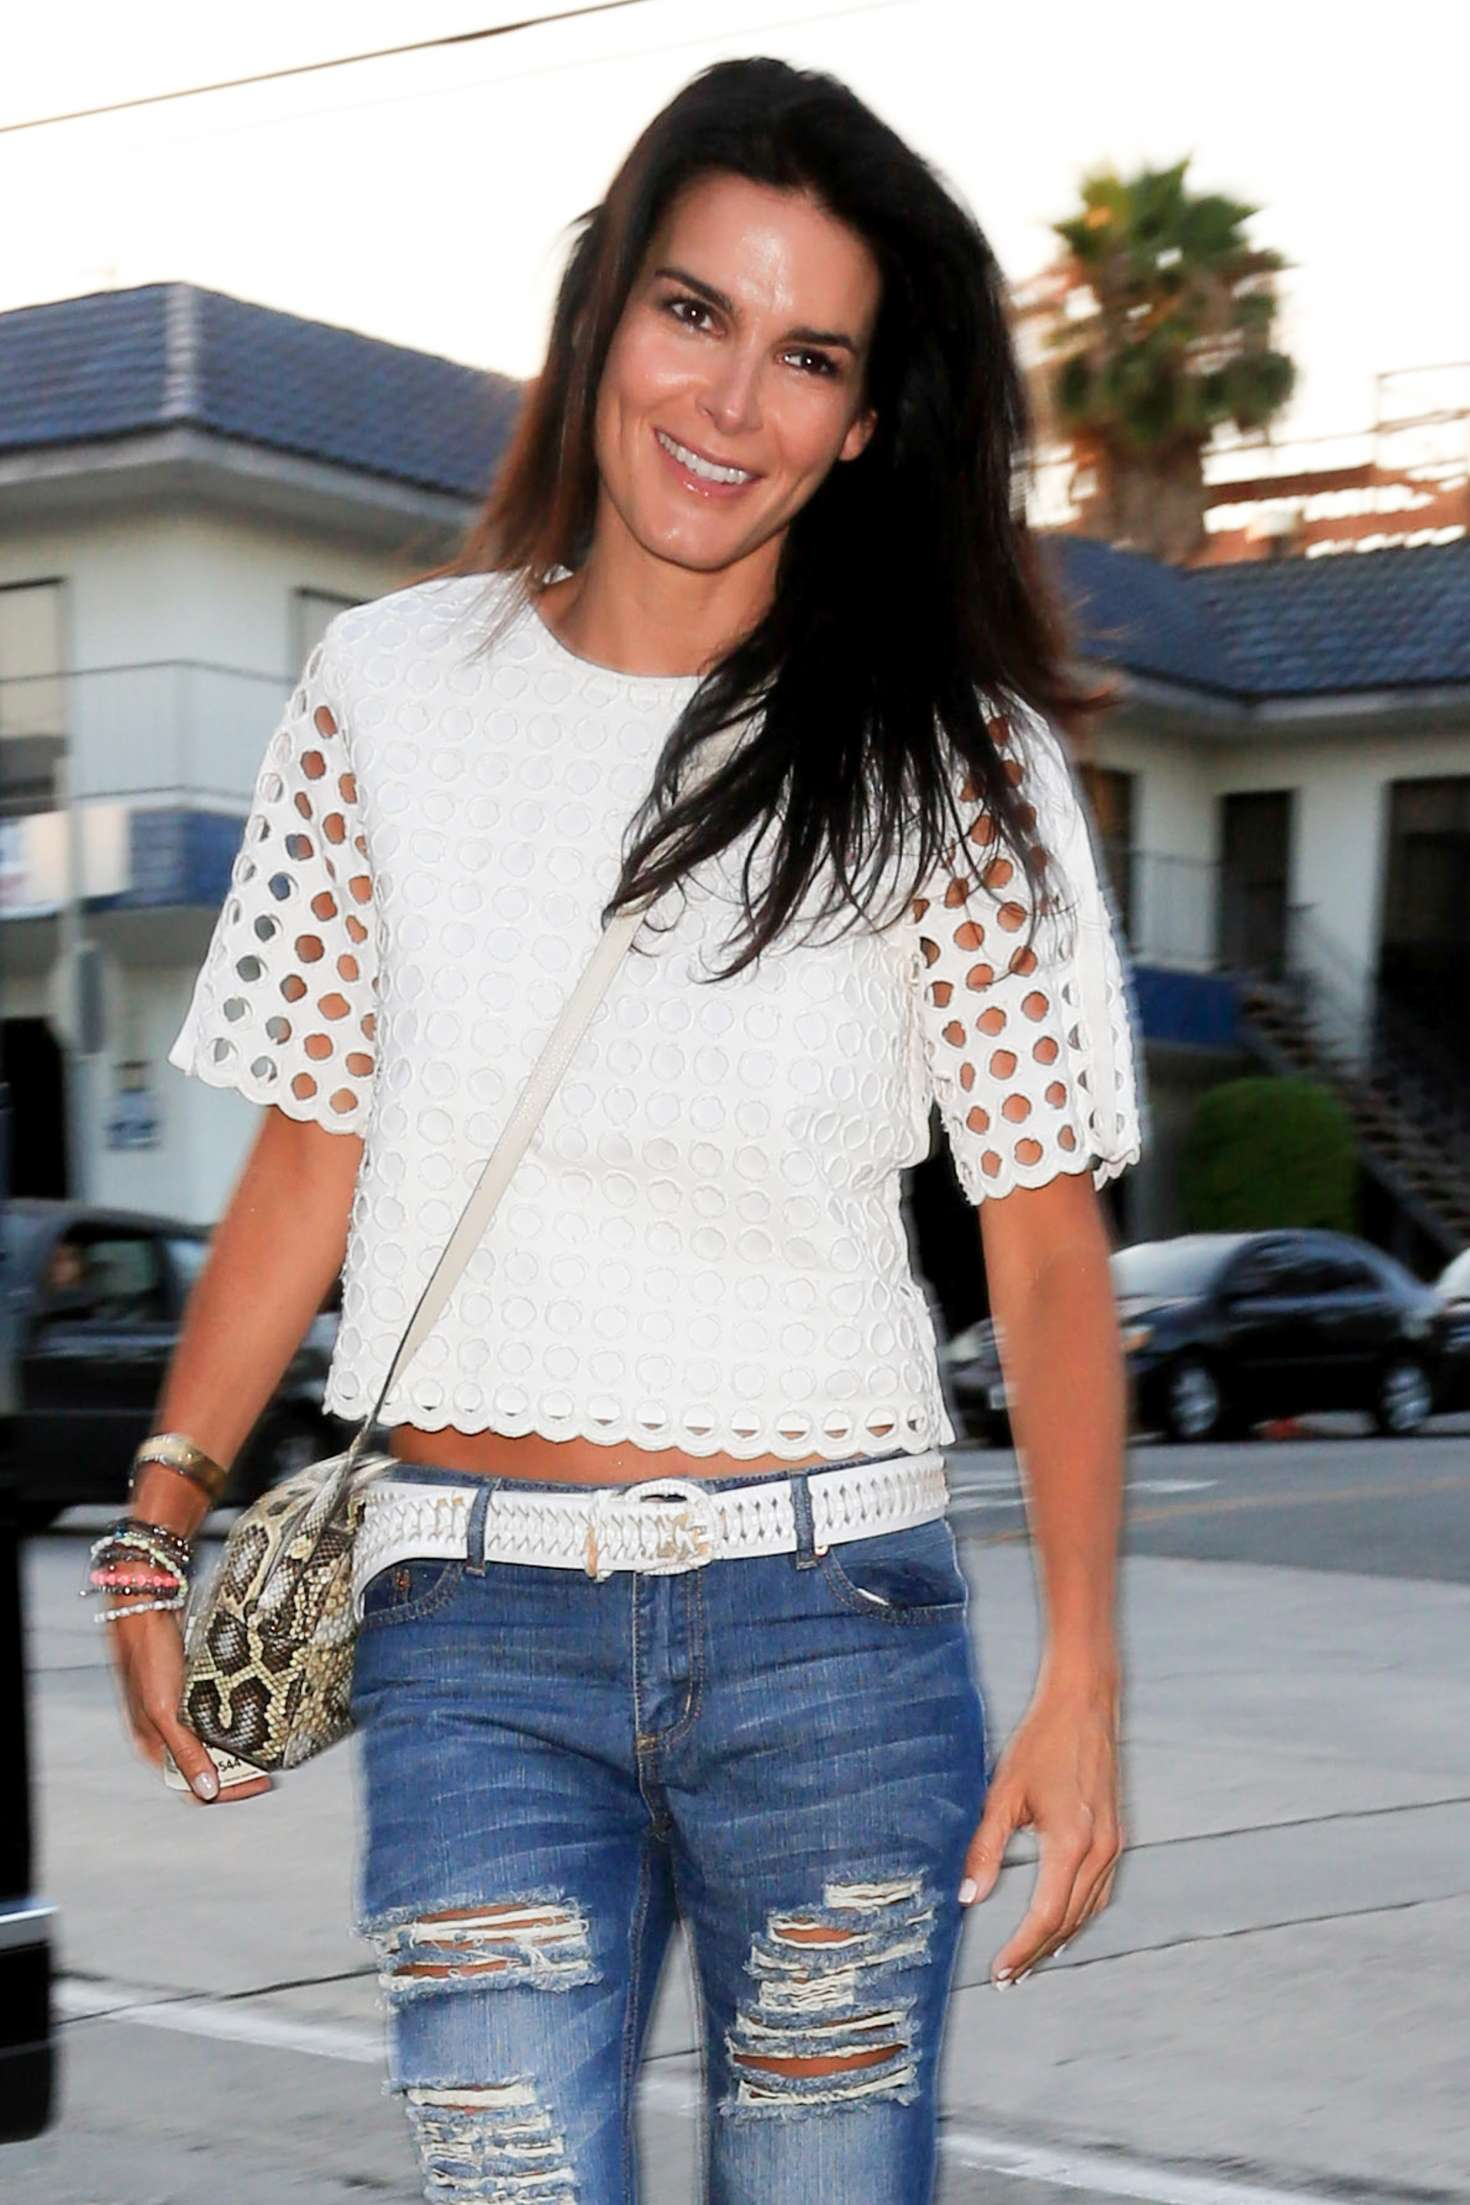 Angie Harmon in Ripped Jeans -20   GotCeleb